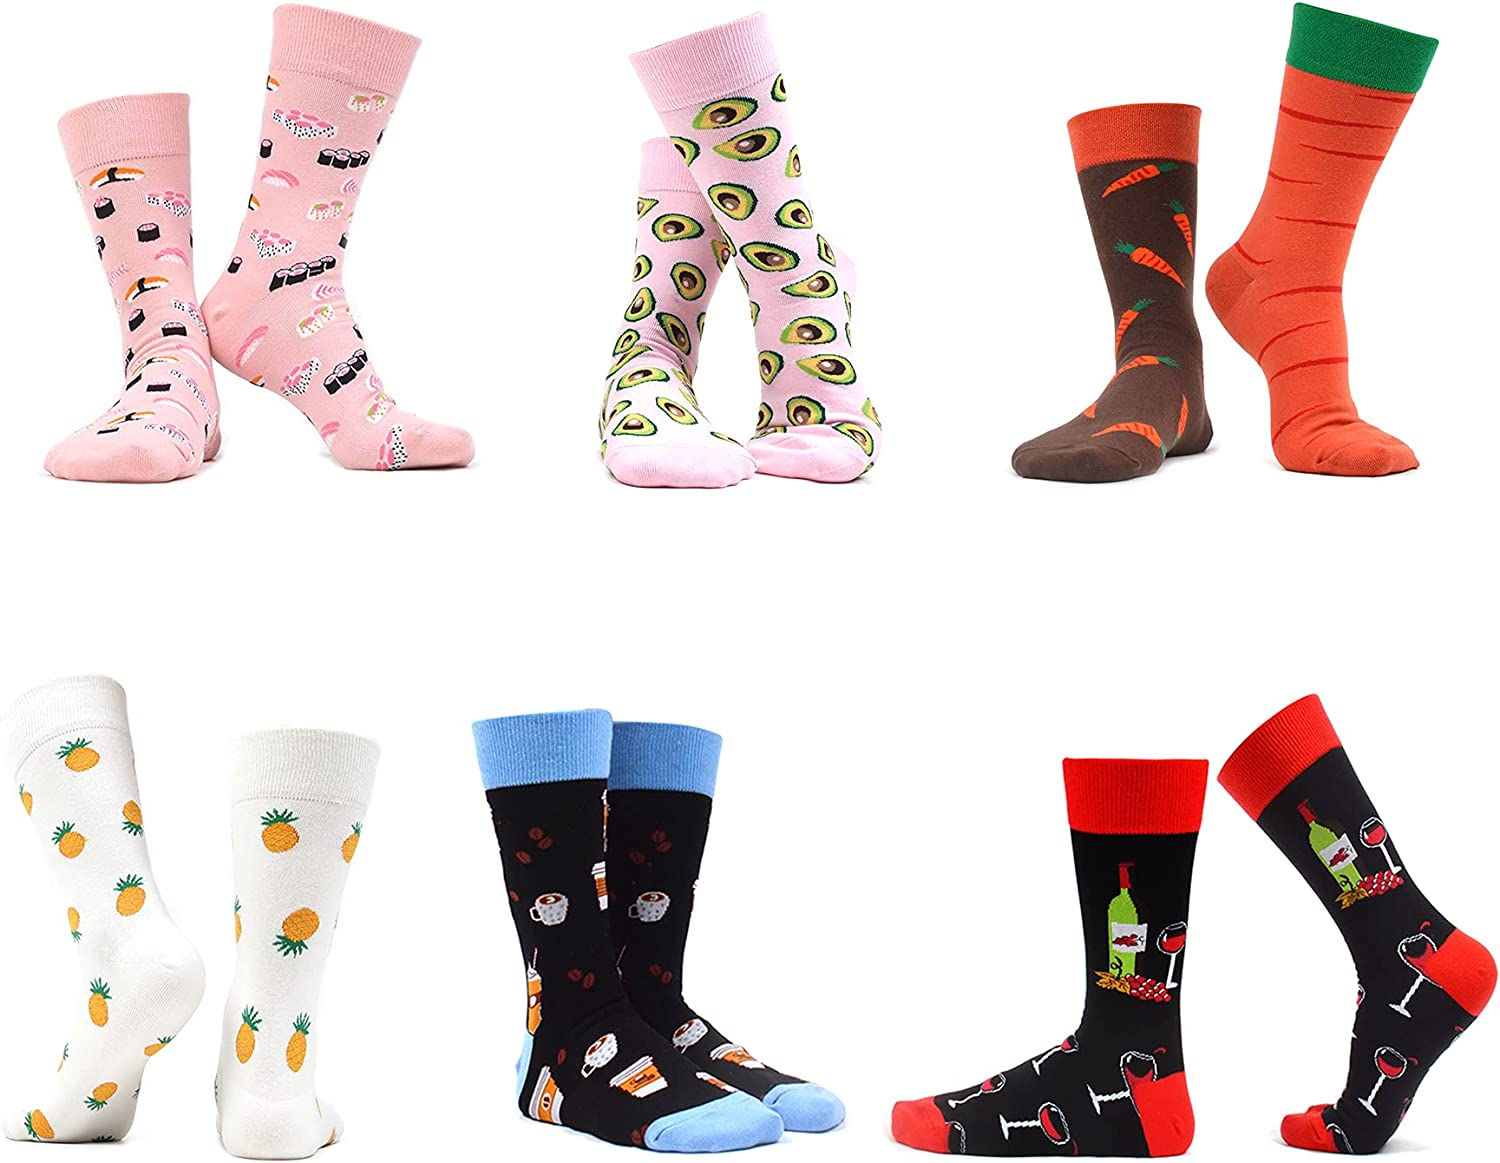 WAZATE Women's Colorful Patterned Cute Funny Casual Fashion Novelty Crew Socks